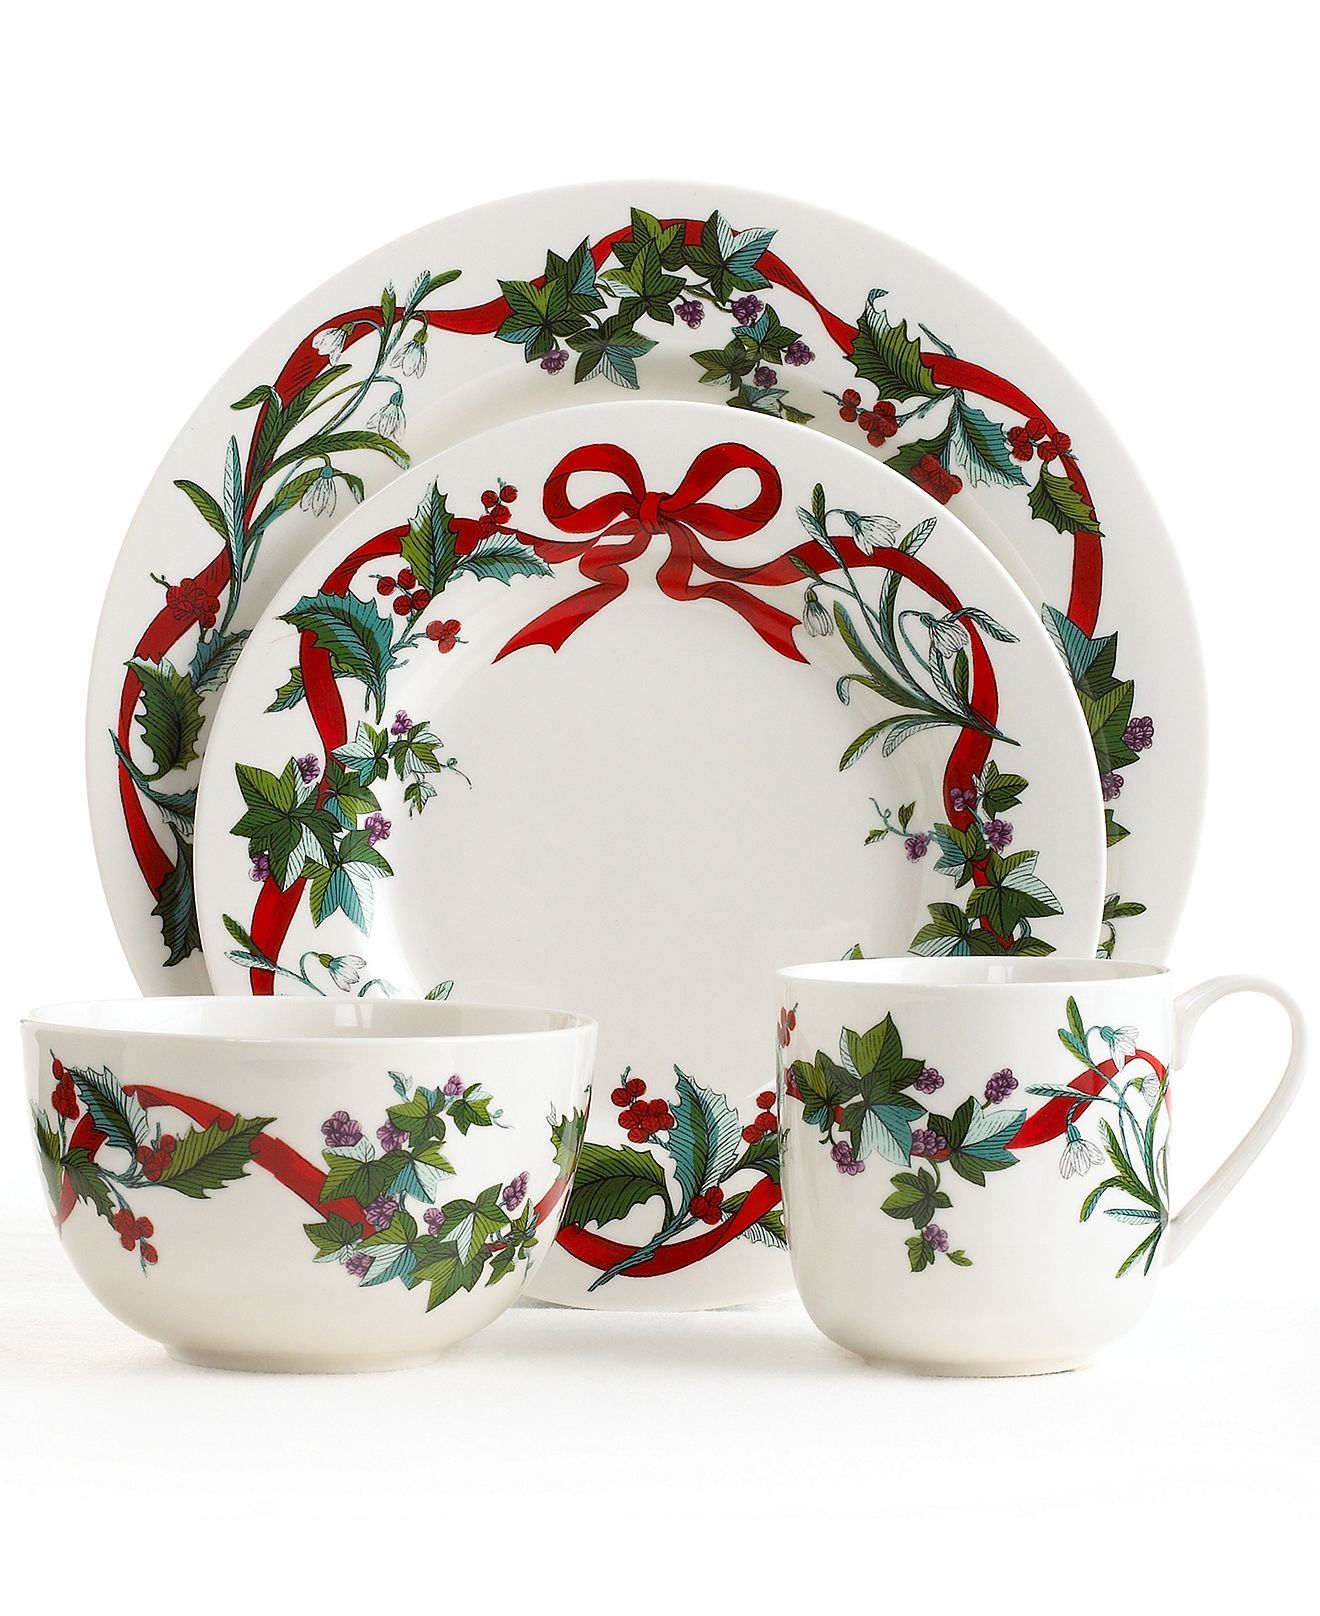 Elegant and festive Holiday Garden dinnerware from Martha Stewart #MarthaMacys #MarthaMacys  sc 1 st  Pinterest & Elegant and festive Holiday Garden dinnerware from Martha Stewart ...